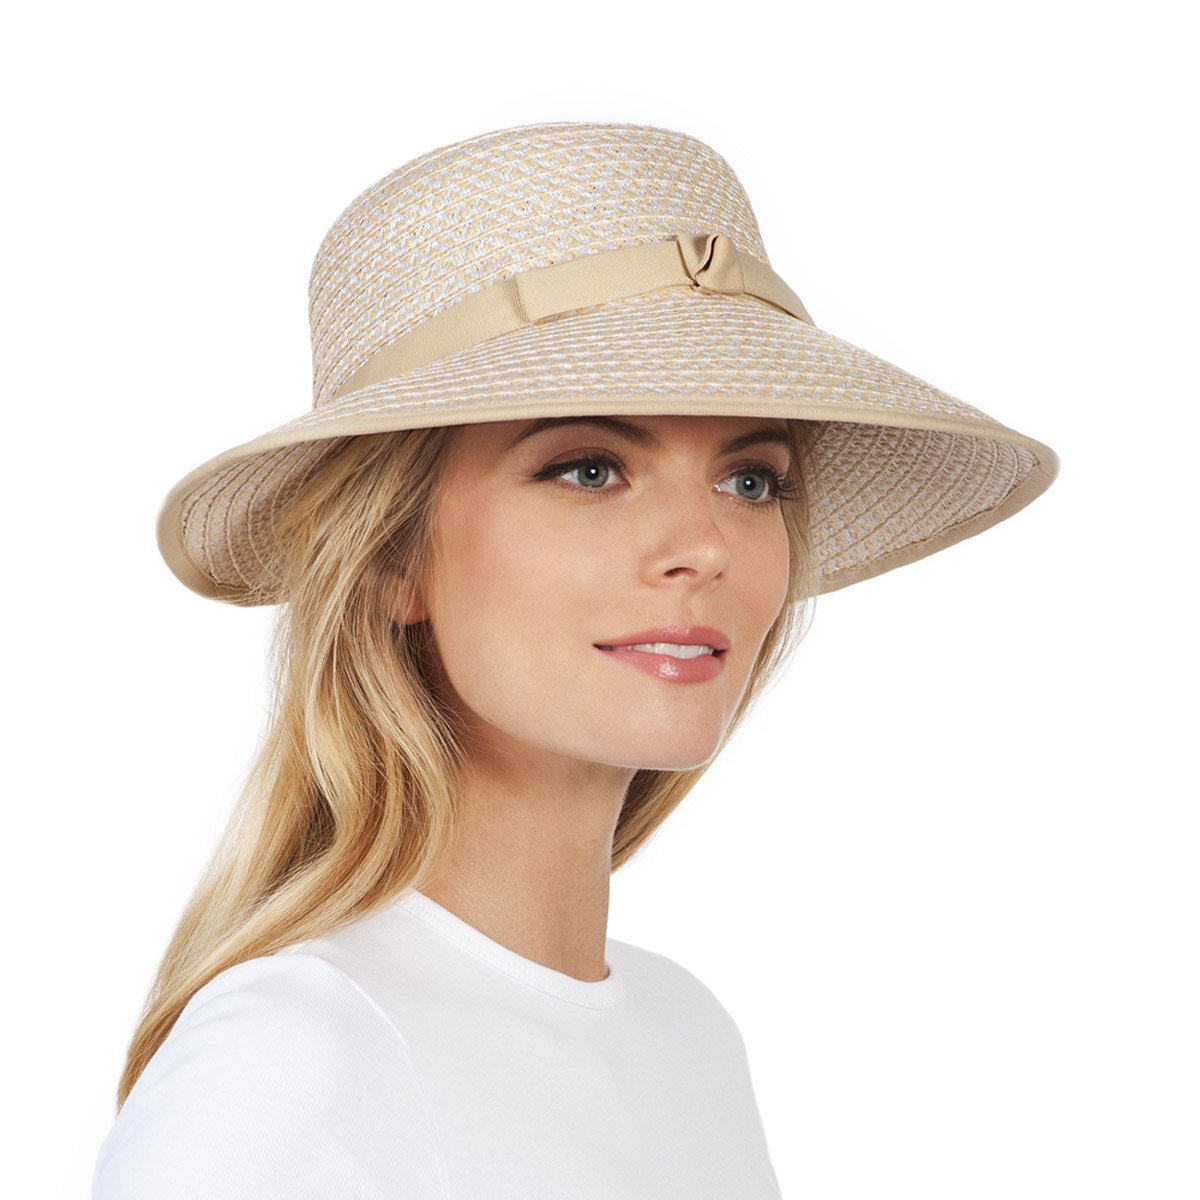 Eric Javits Luxury Fashion Designer Women's Headwear Hat - Squishee Cap - Cream